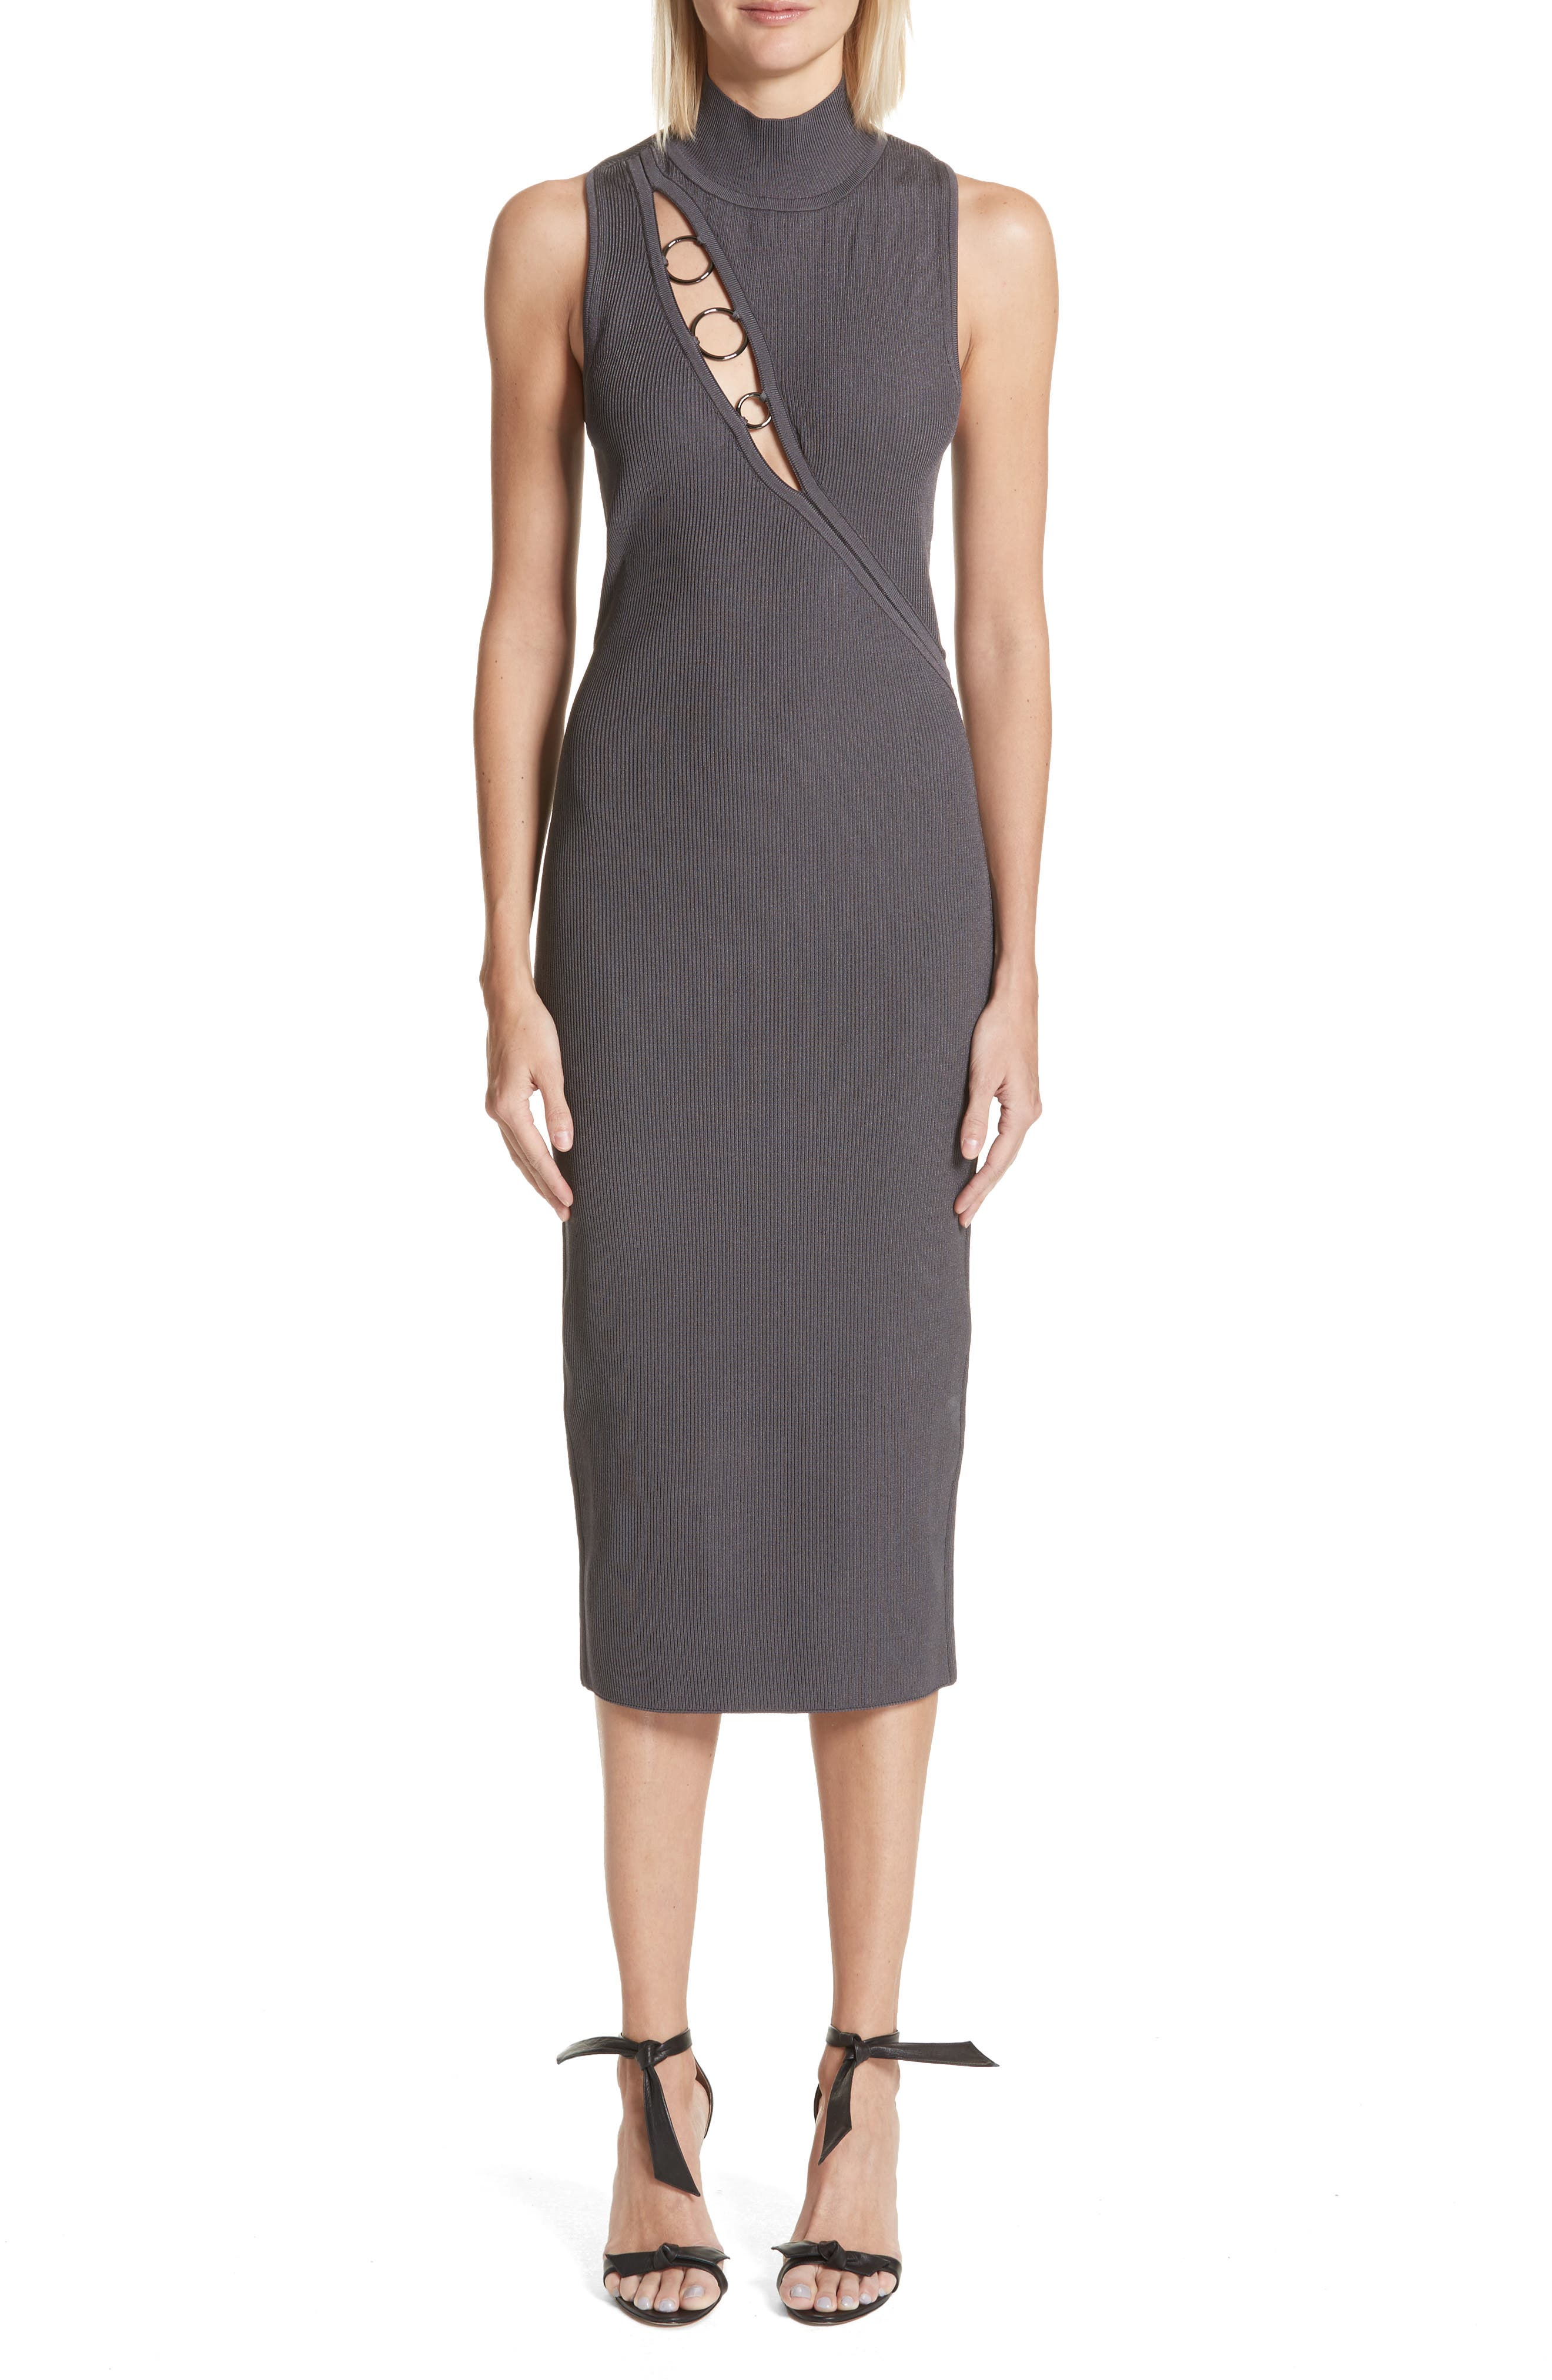 Alsia Cutout Knit Dress,                             Main thumbnail 1, color,                             Graphite/ Gunmetal